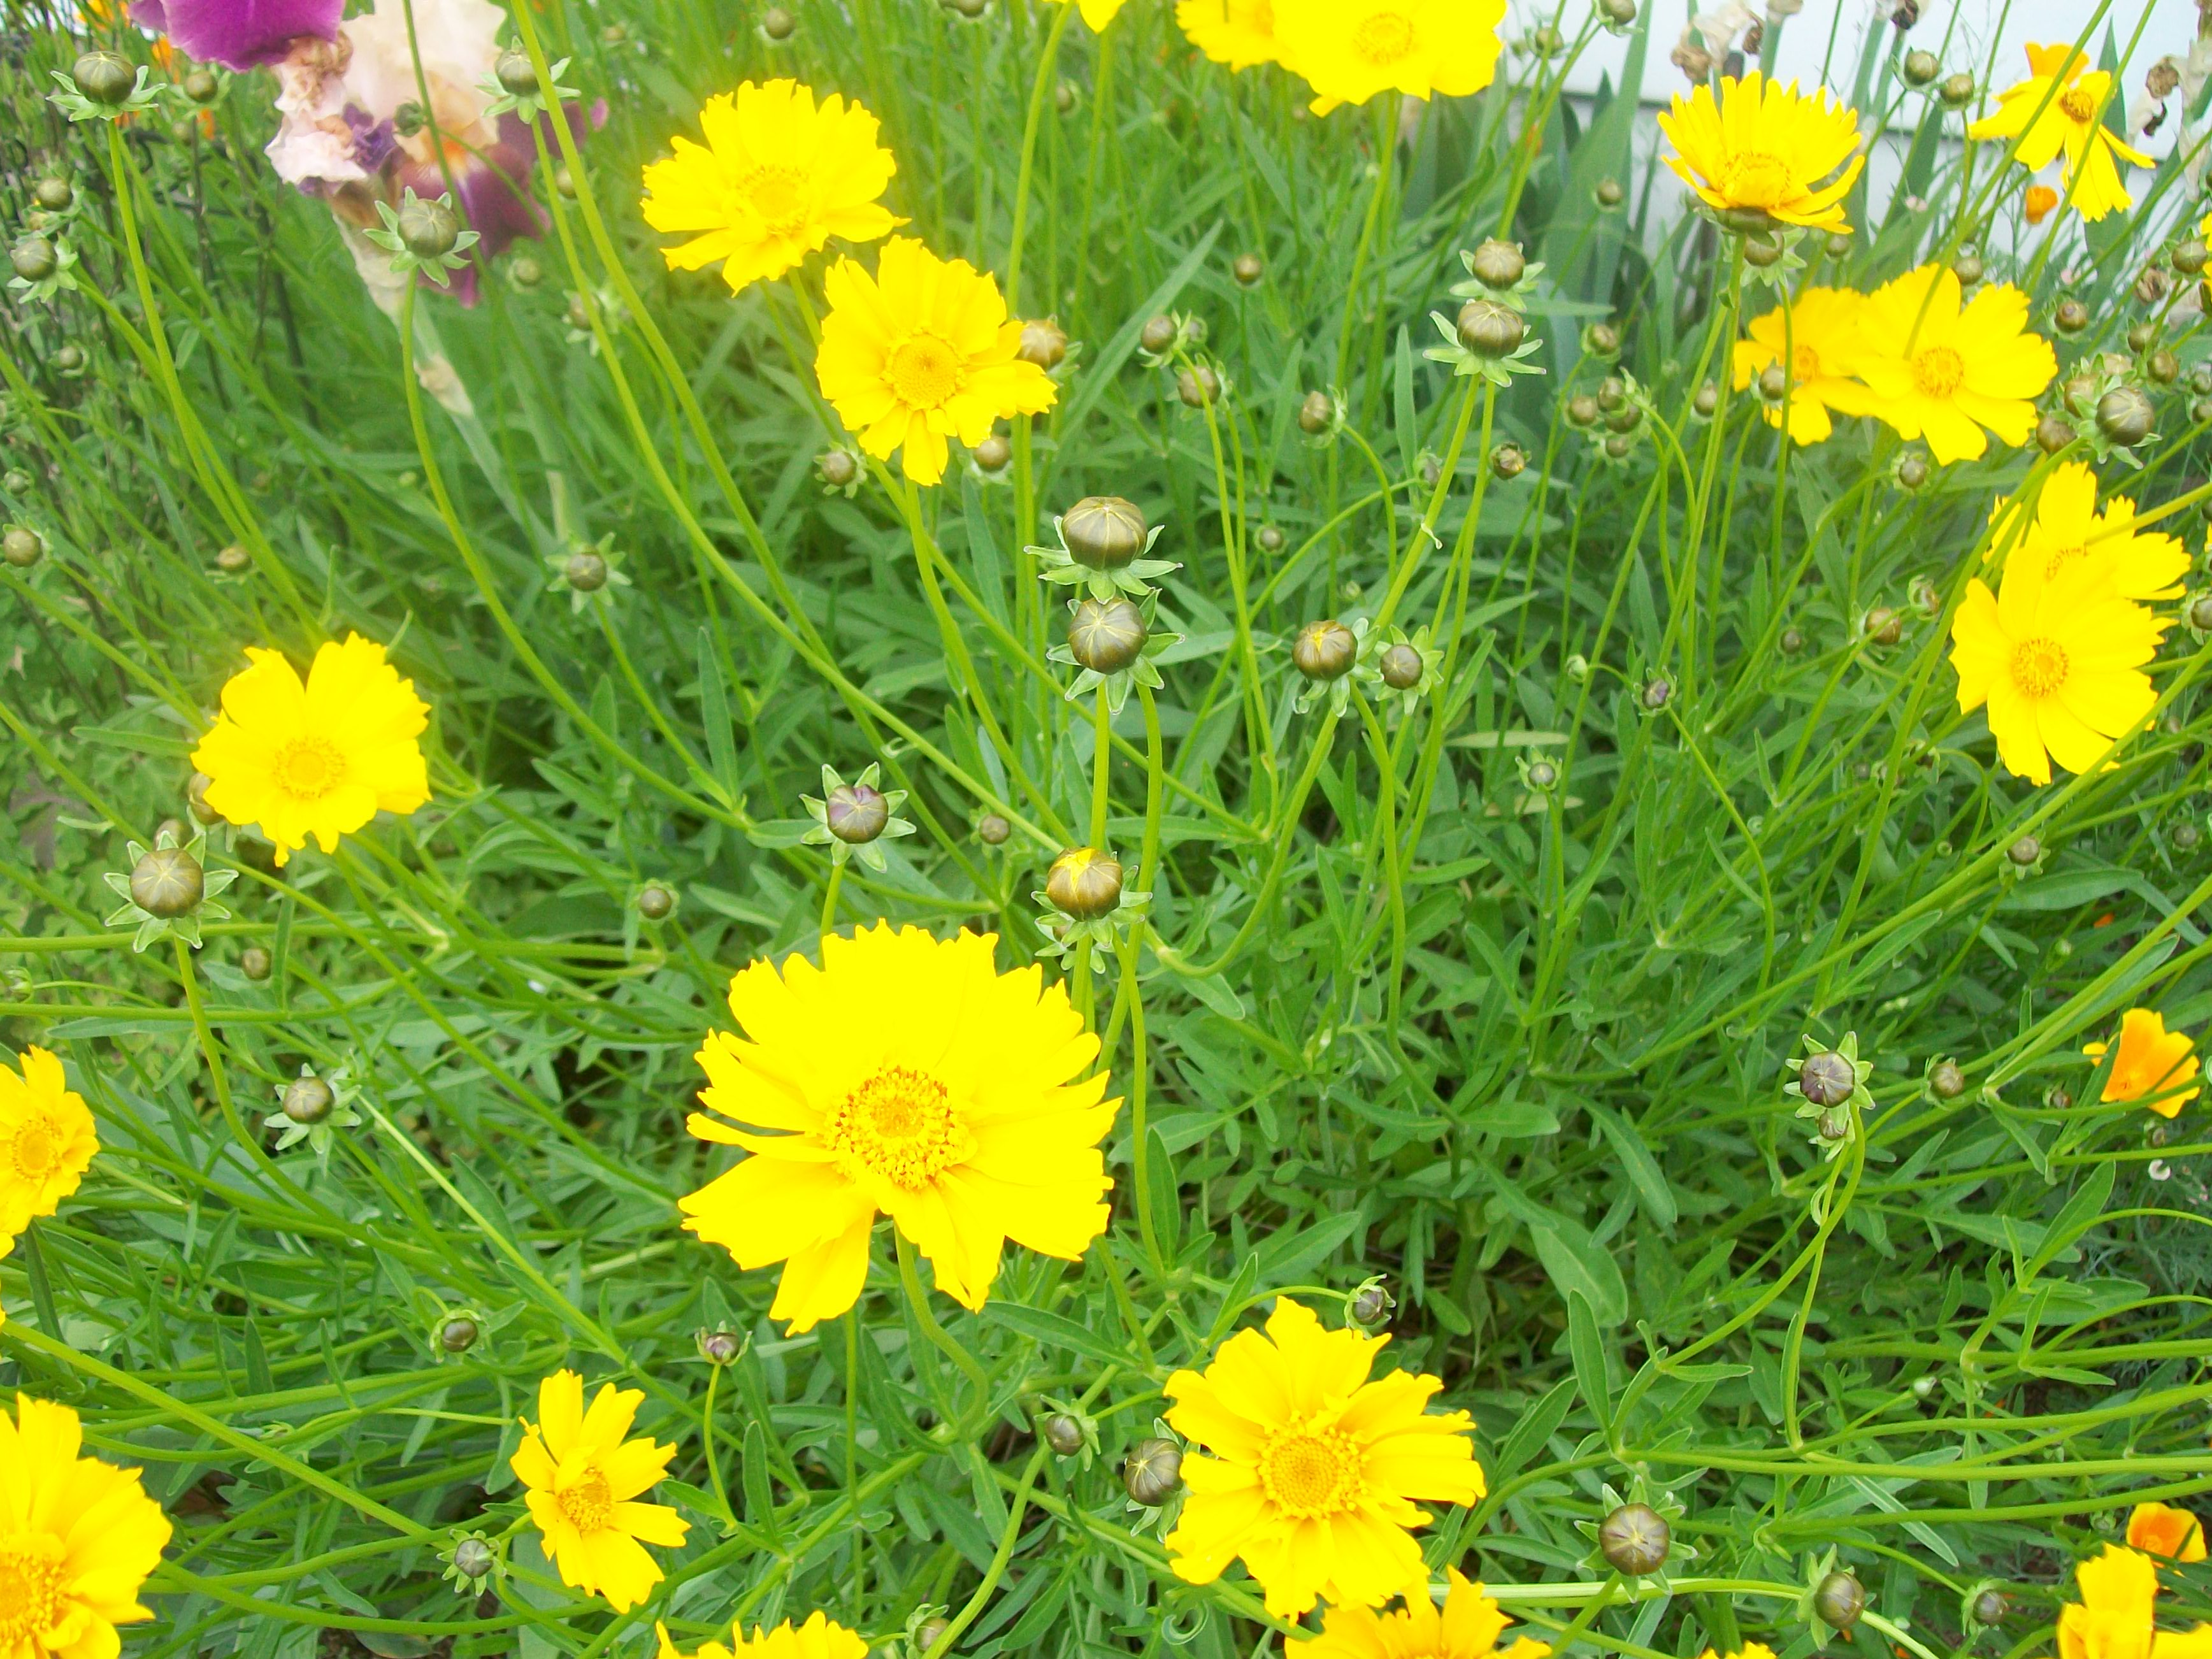 False Daisies The Marigold School Of Early Learning